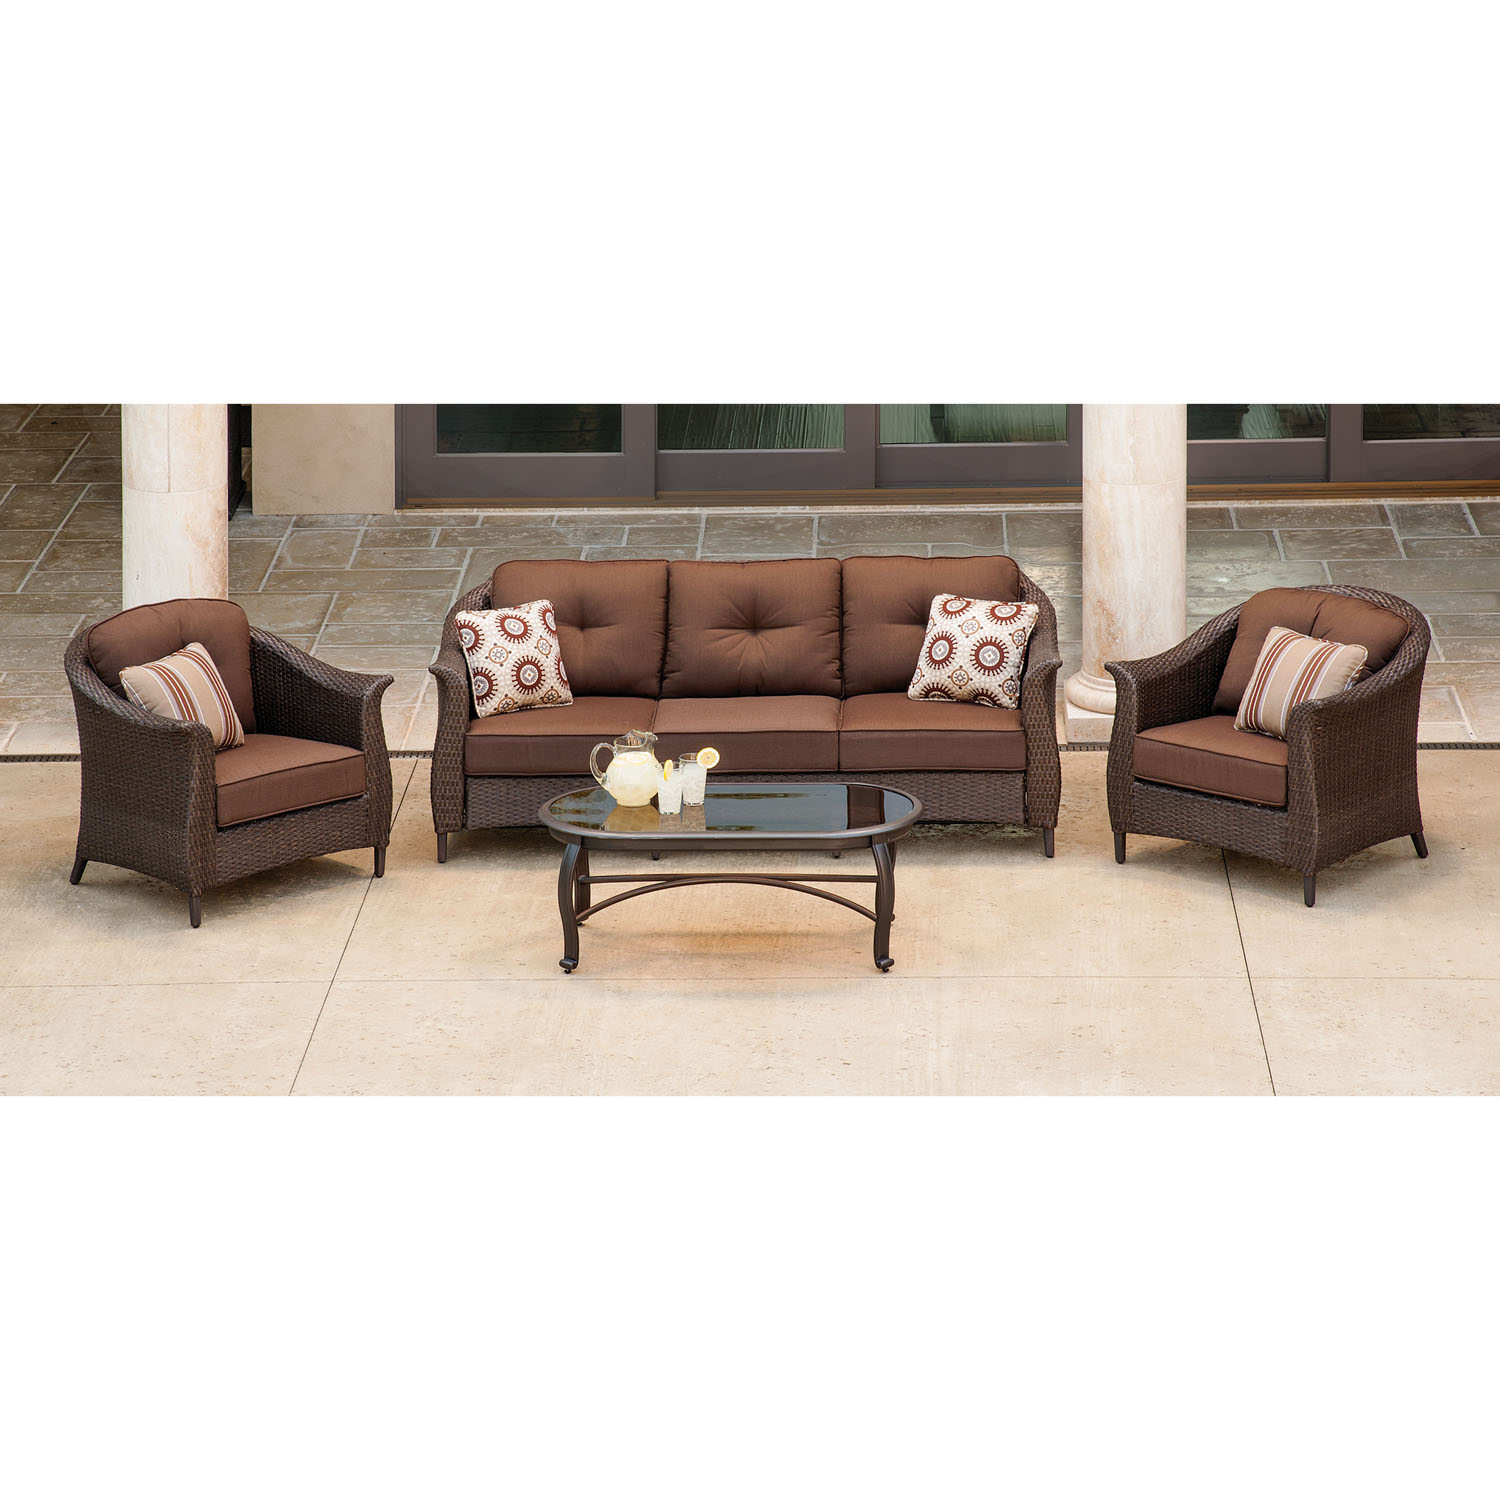 Hanover Gramercy 4 Piece Wicker Patio Conversation Set by Wicker Furniture